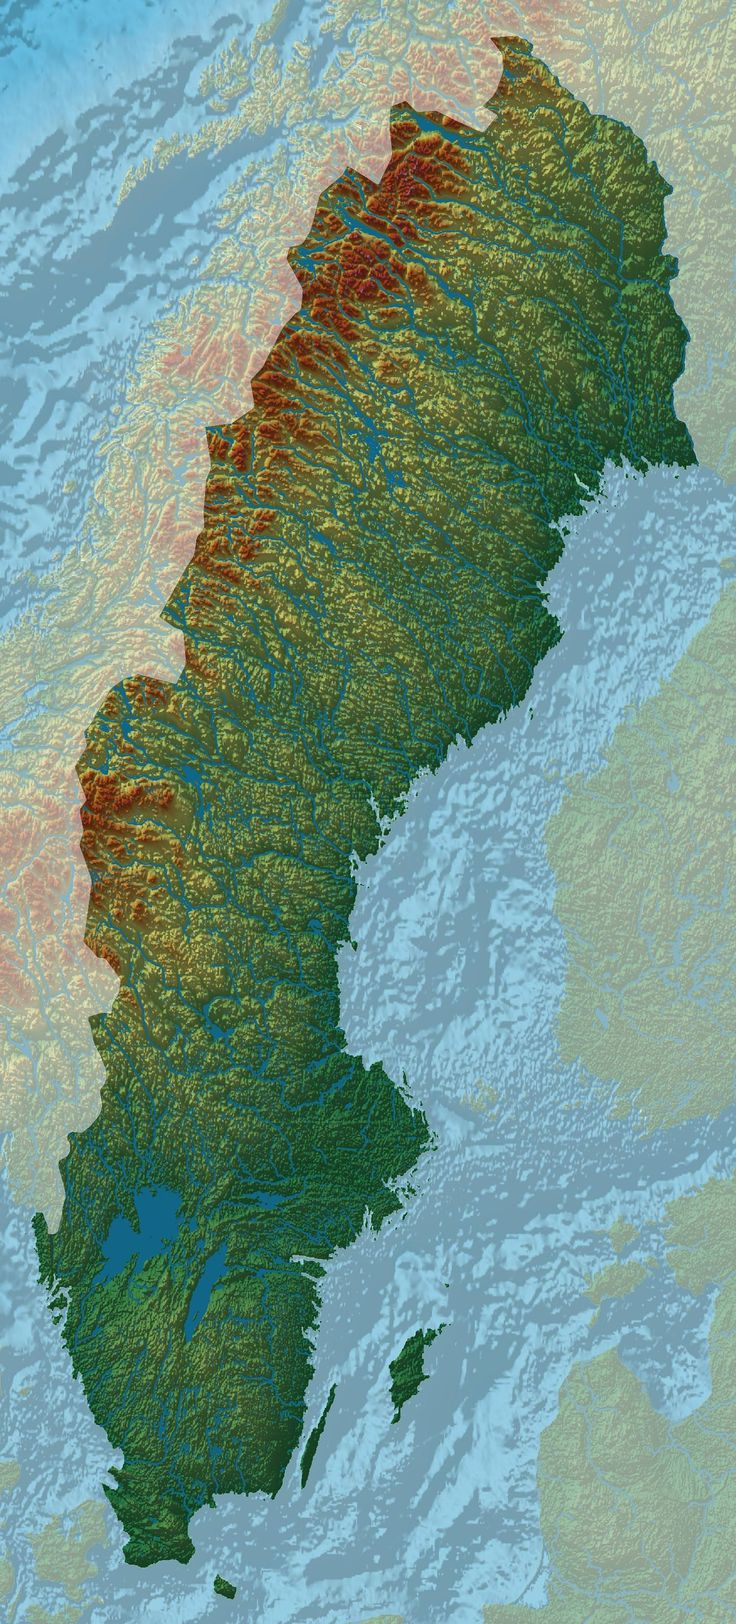 Sweden relief map 212 best maps images